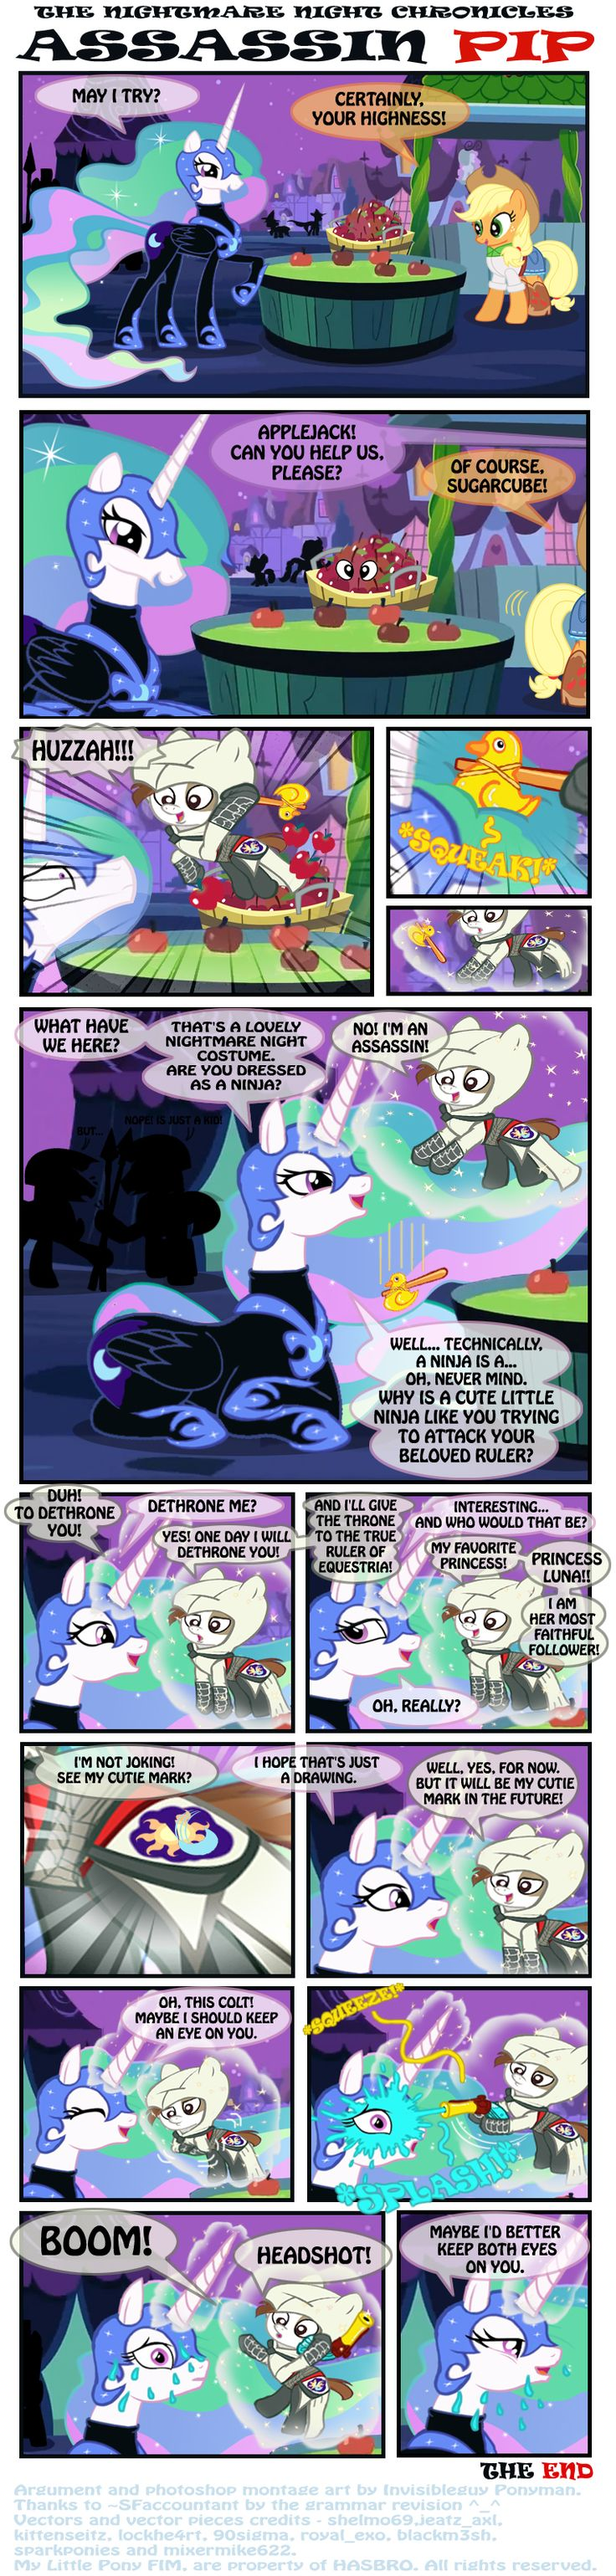 THE NIGHTMARE NIGHT CHRONICLES - ASSASSIN PIP by INVISIBLEGUY-PONYMAN on deviantART